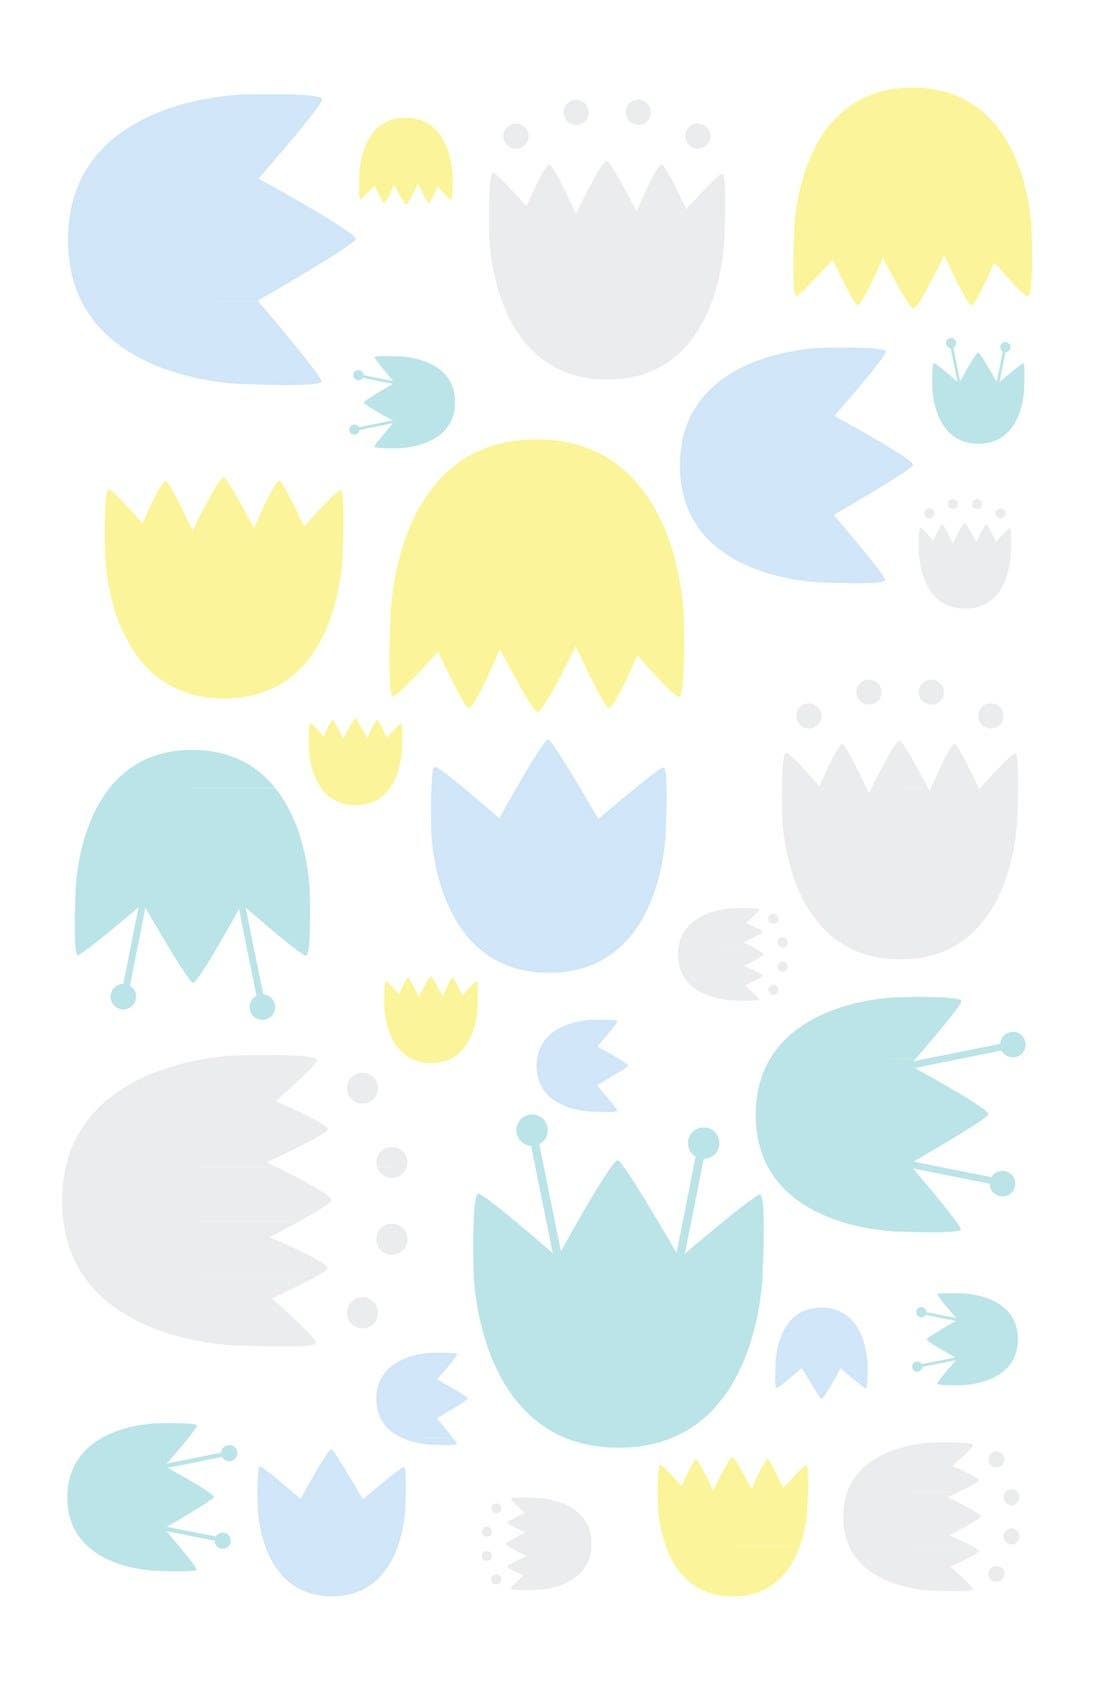 'Garden' Crib Sheet, Crib Skirt, Changing Pad Cover, Play Blanket & Wall Decals,                             Alternate thumbnail 6, color,                             BLUE